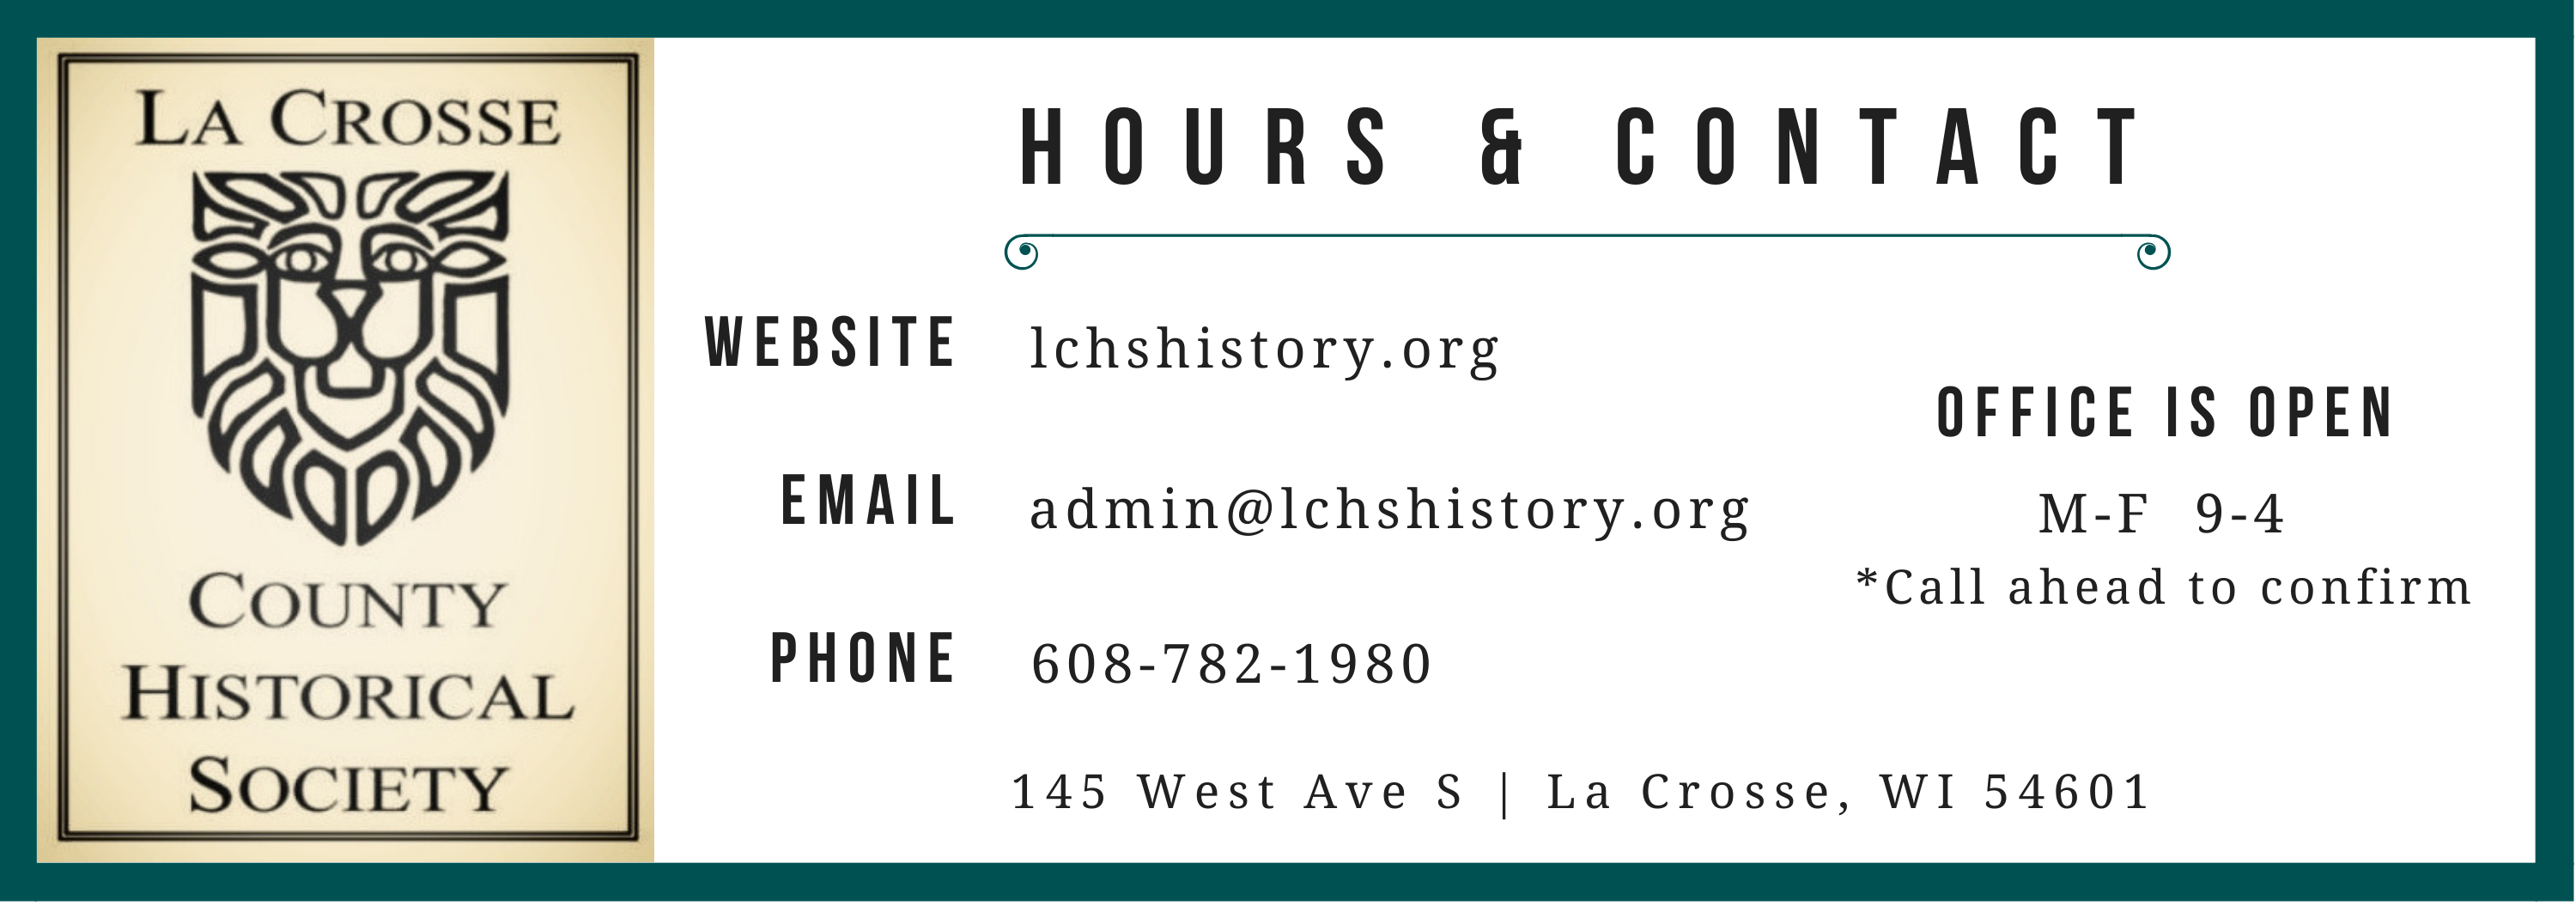 La Crosse County Historical Society logo and contact information